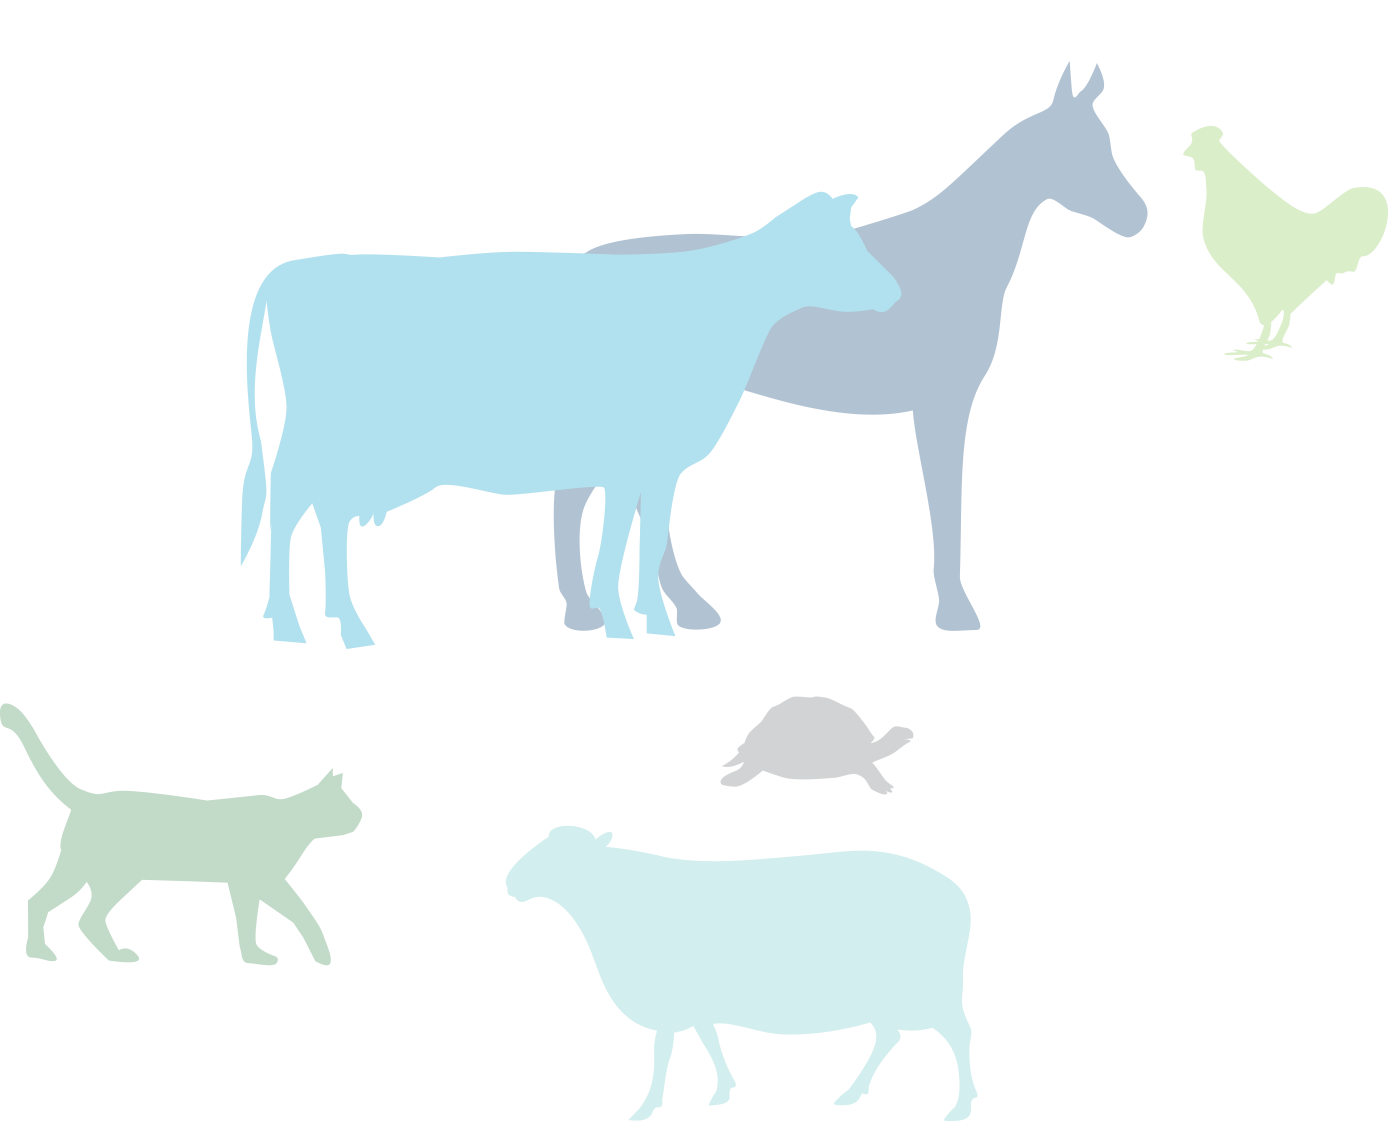 Tool clipart neurosurgeon. Frontiers in veterinary science